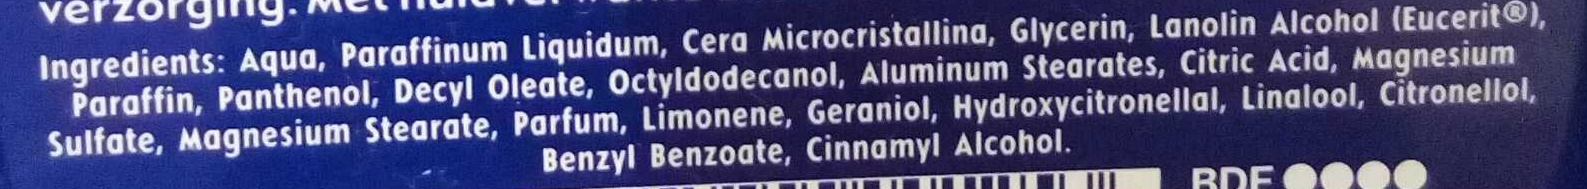 Nivéa creme - Ingredients